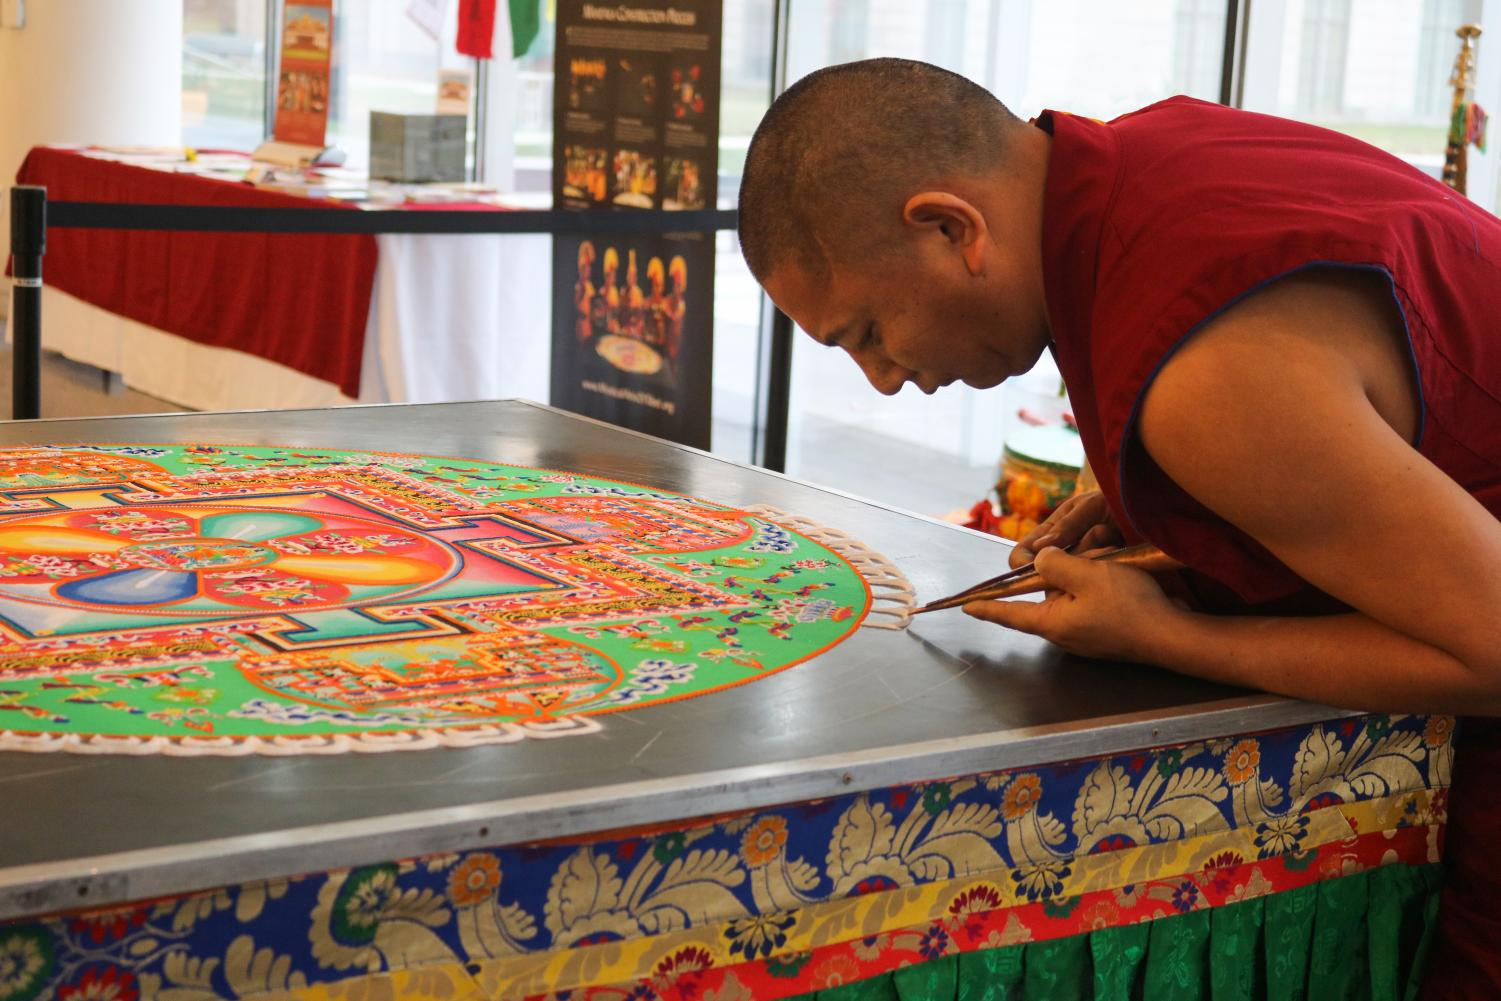 A monk uses a chak-pur, a traditional metal funnel, to pour grains of sand needed to construct the mandala.